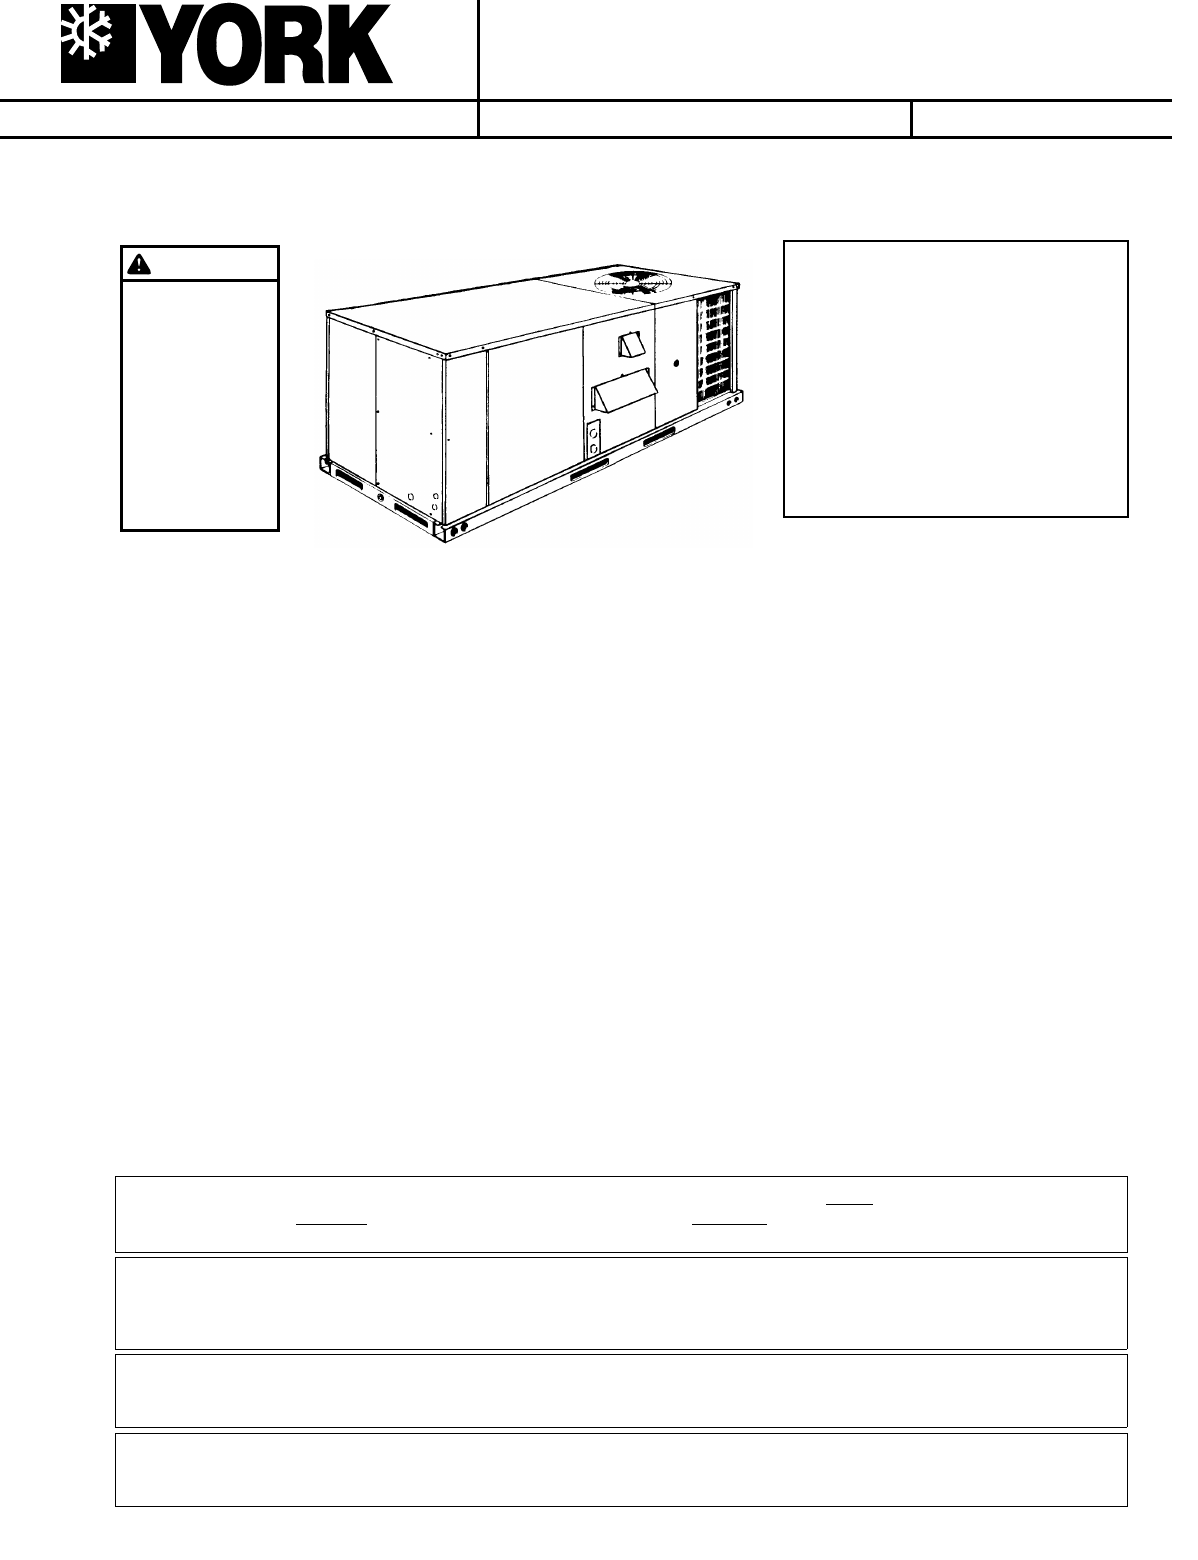 baf4713e-a782-495d-bcce-e76d92bb7210-bg1 York Air Handler Wiring Diagram on york motor wiring diagram, york compressor wiring diagram, york defrost board wiring diagram, york rtu wiring diagrams, heat pump air handler diagram, york air handler systems, york ac wiring diagram, residential air handler diagram, trane air handler parts diagram, york heat pump wiring diagram, air handler schematic diagram, york air conditioner schematic, home air conditioning diagram, york air handler parts breakdown, york hvac wiring diagram, york heat pump thermostat wiring, york condensing unit wiring diagram, york air conditioning wiring diagram, york thermostat wiring diagram, air handler unit diagram,